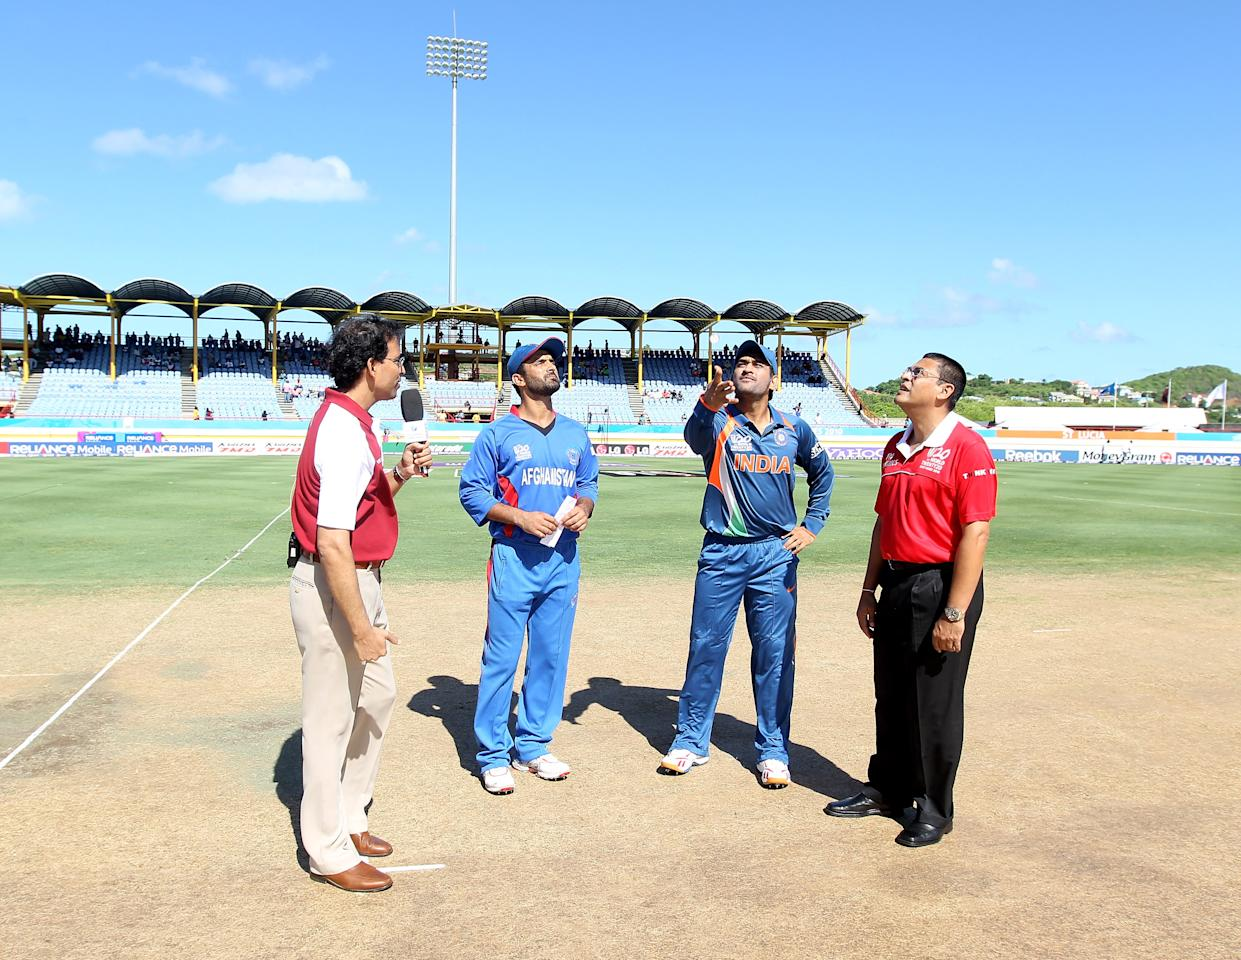 GROS ISLET, SAINT LUCIA - MAY 01: Nowroz Mangal of Afghanistan (L) and M S Dhoni of India take part in the coin toss before the ICC World Twenty20 Group A match between India and Afghanistan played at the Beausejour Cricket Ground  on May 1, 2010 in Gros Islet, Saint Lucia.  (Photo by Julian Herbert/Getty Images)